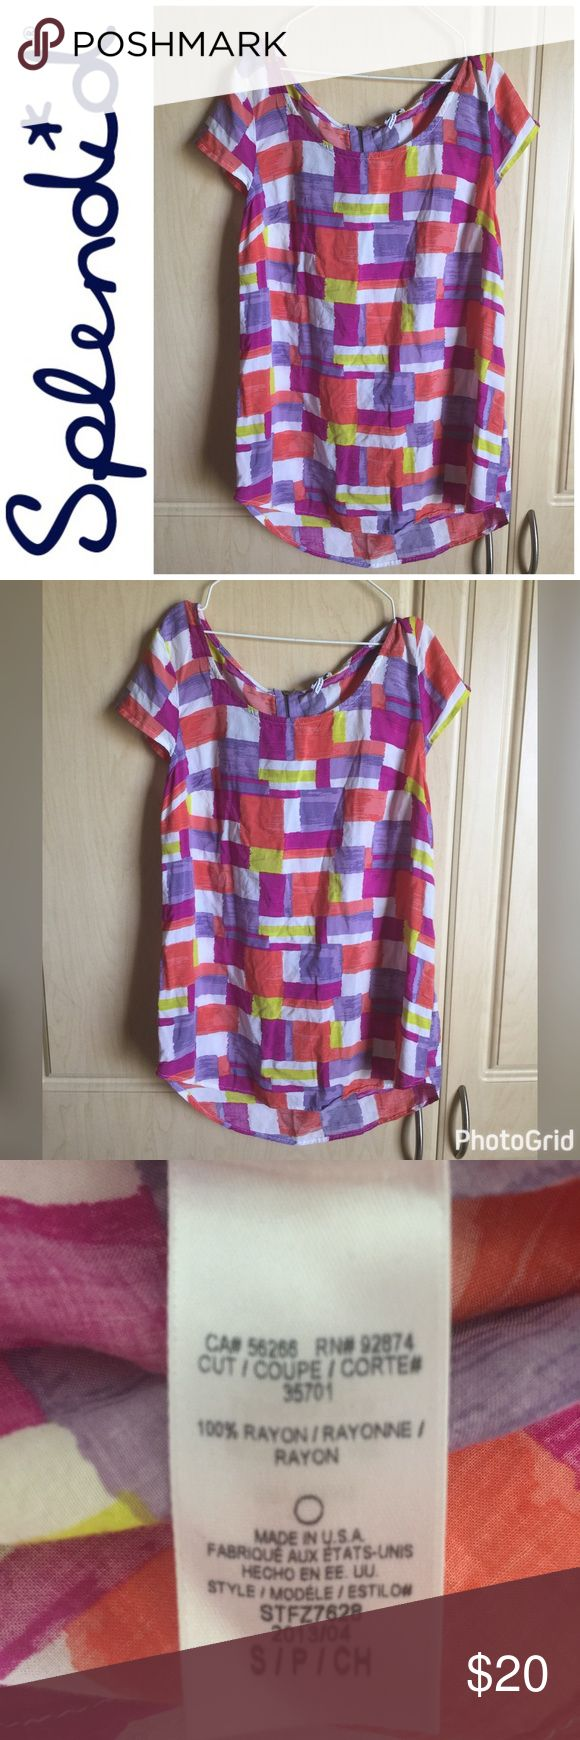 🎉2X Host Pick🎉Splendid Multi Color Top Small 🎉2X Host Pick 4/13/2017 & 6/17/2017🎉 Splendid Multi Color Print Short Sleeve Top Size Small With Zipper On Back, Fushcia Purple Yellow Coral, Shirt Is Super Soft, Mint Condition, Smoke & Pet Free Splendid Tops